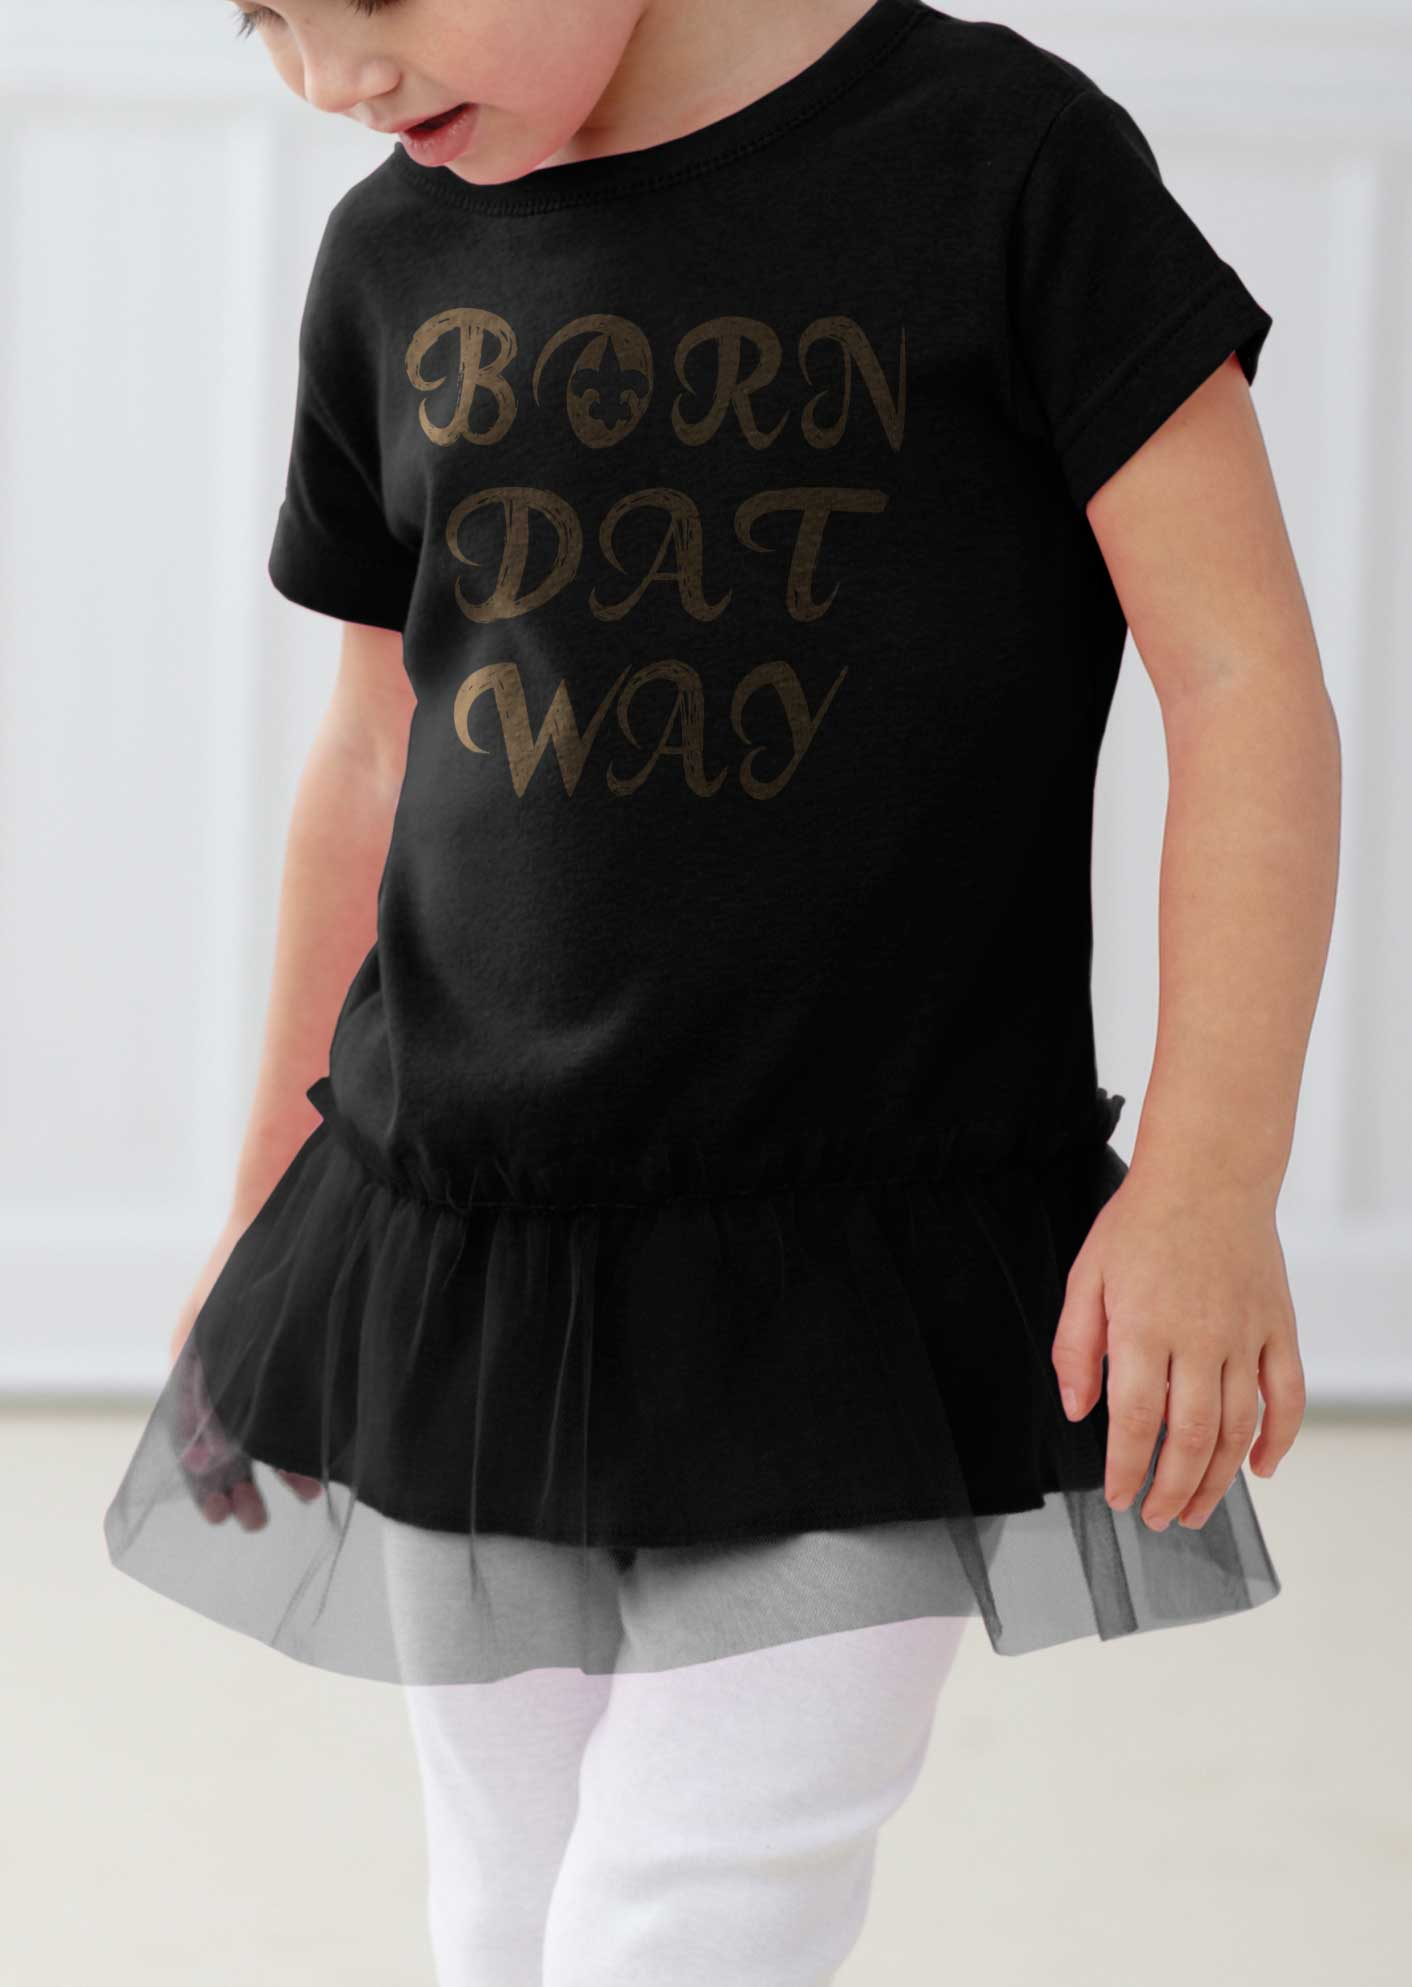 Born DAT Way Baby New Orleans SAINTS Toddler Tutu · Love